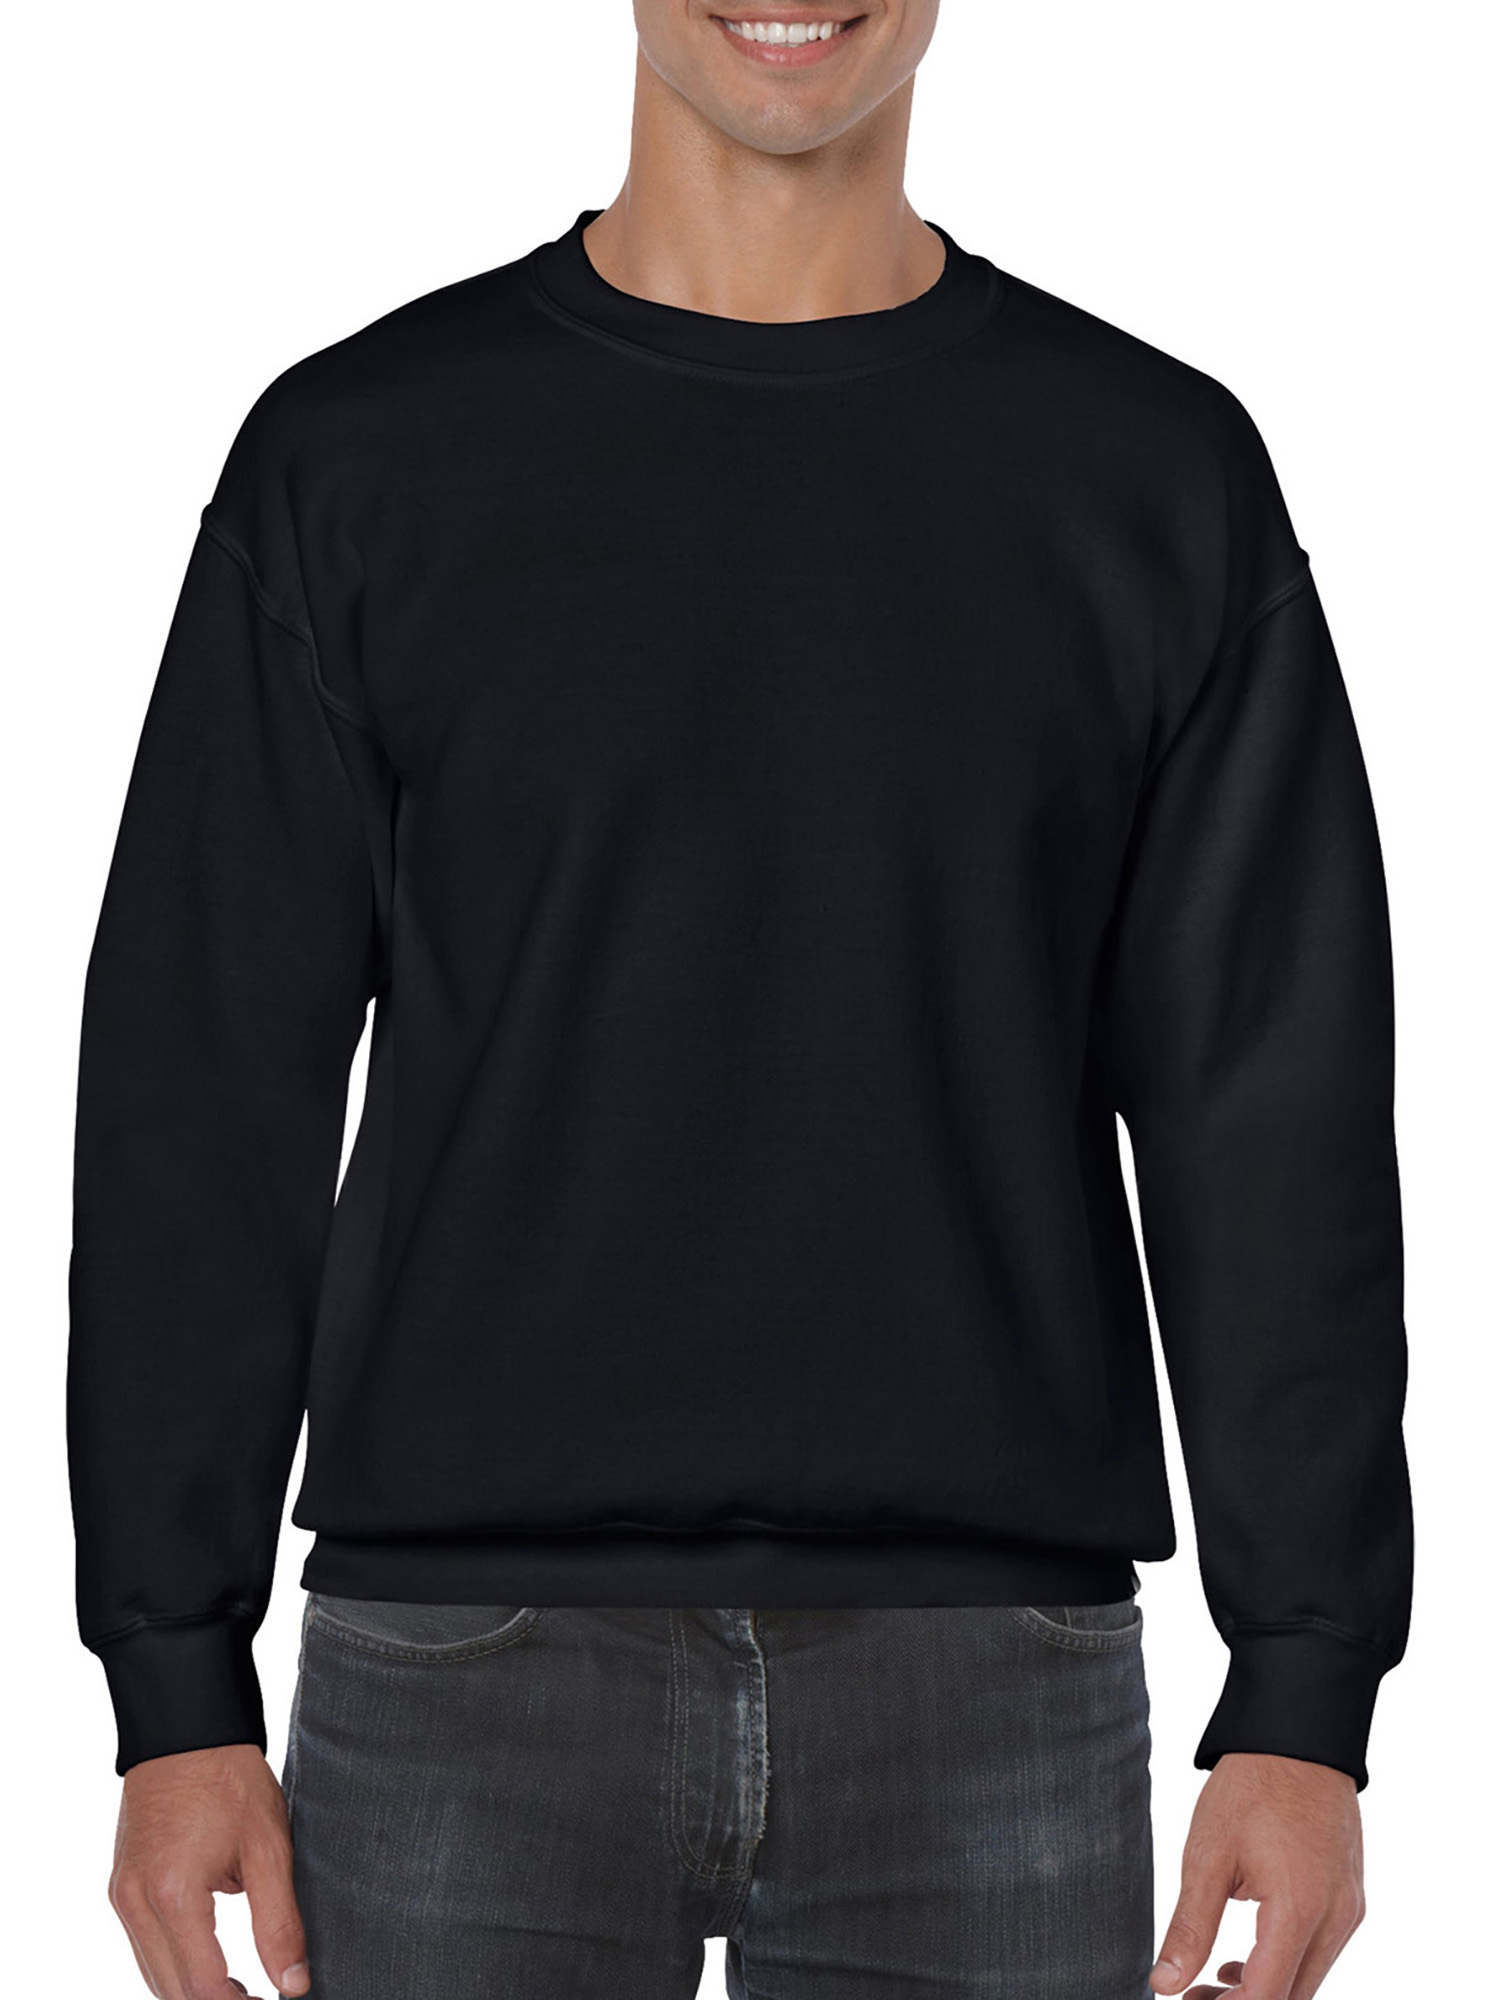 Big Mens Crewneck Sweatshirt